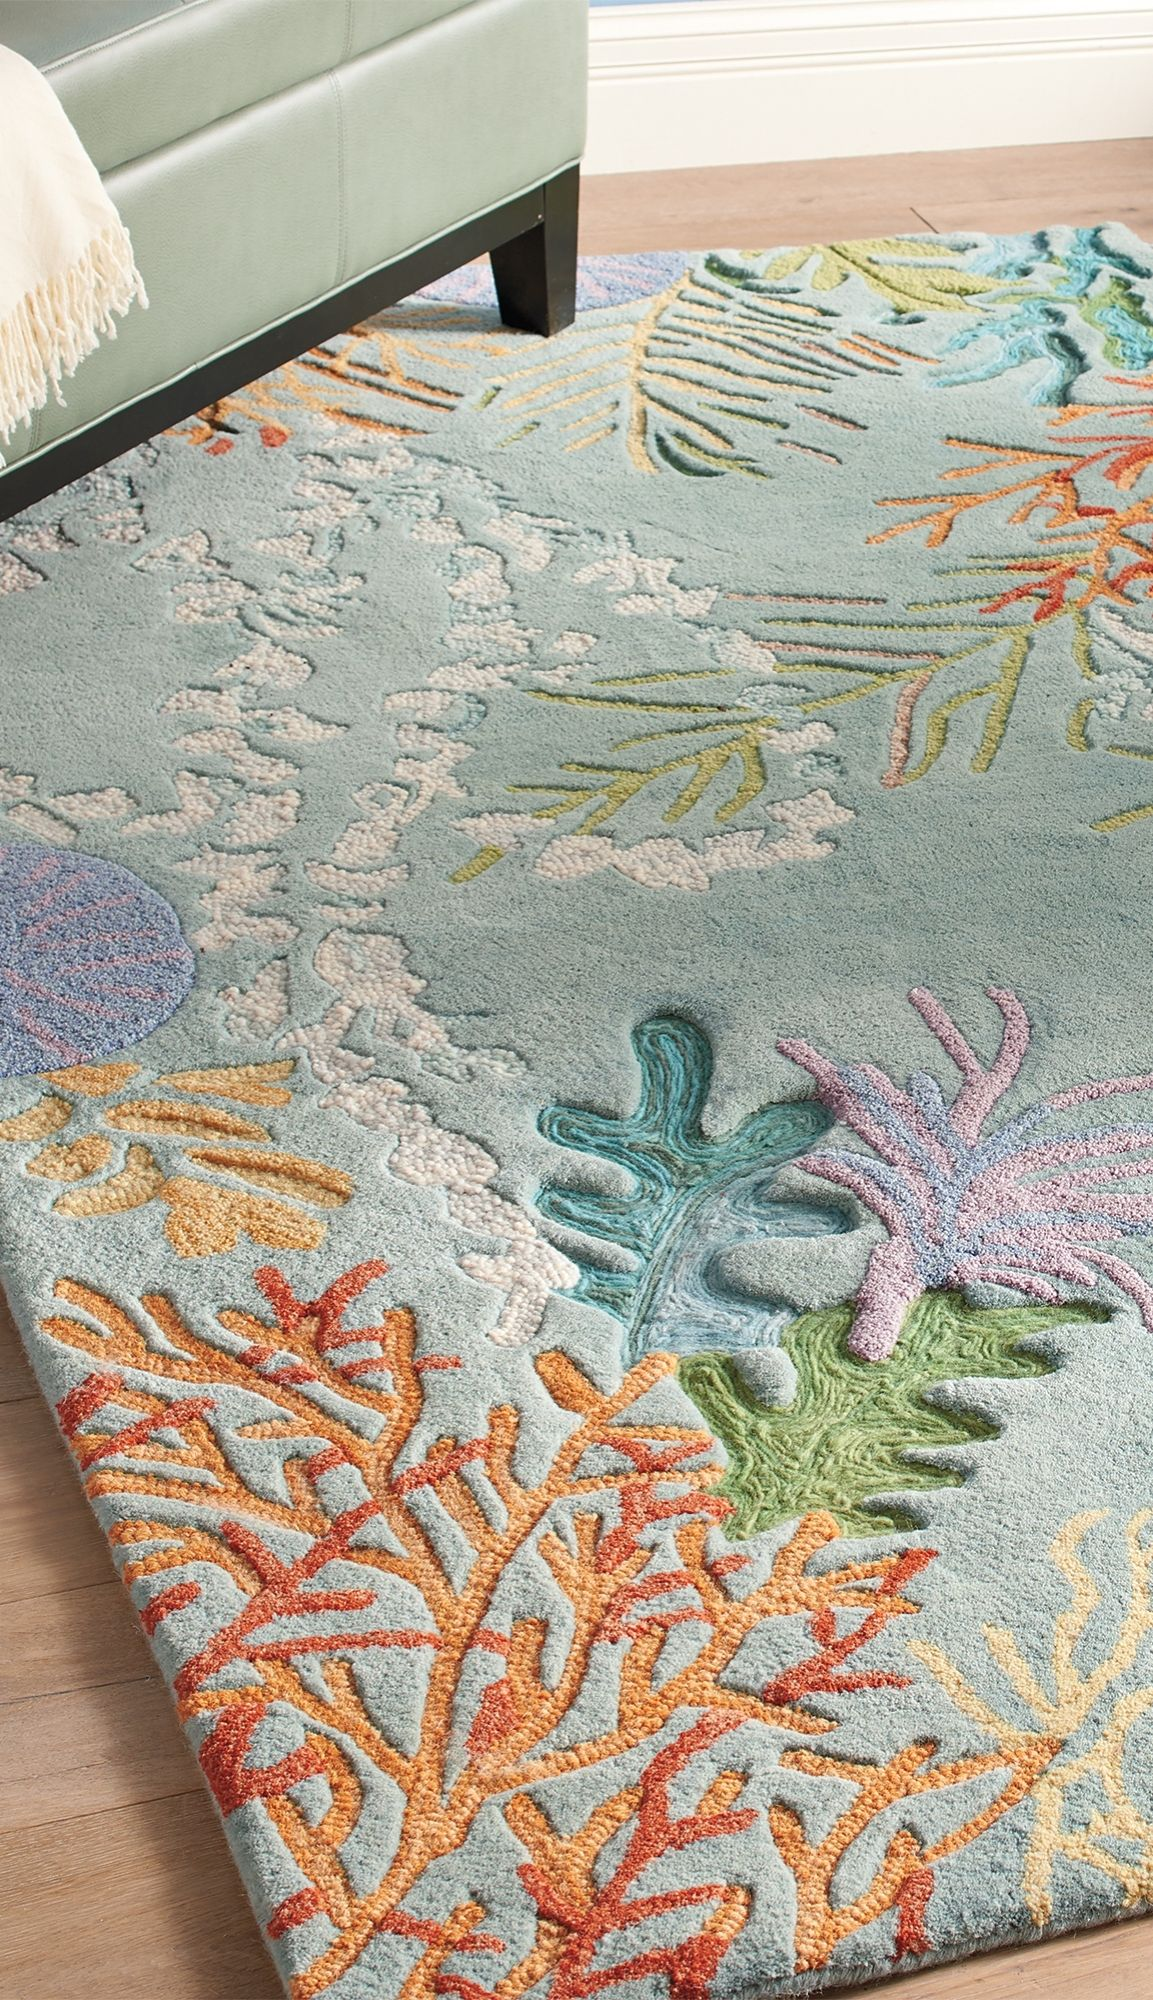 Take The Plunge And Add This Gorgeous Wool Rug To Your